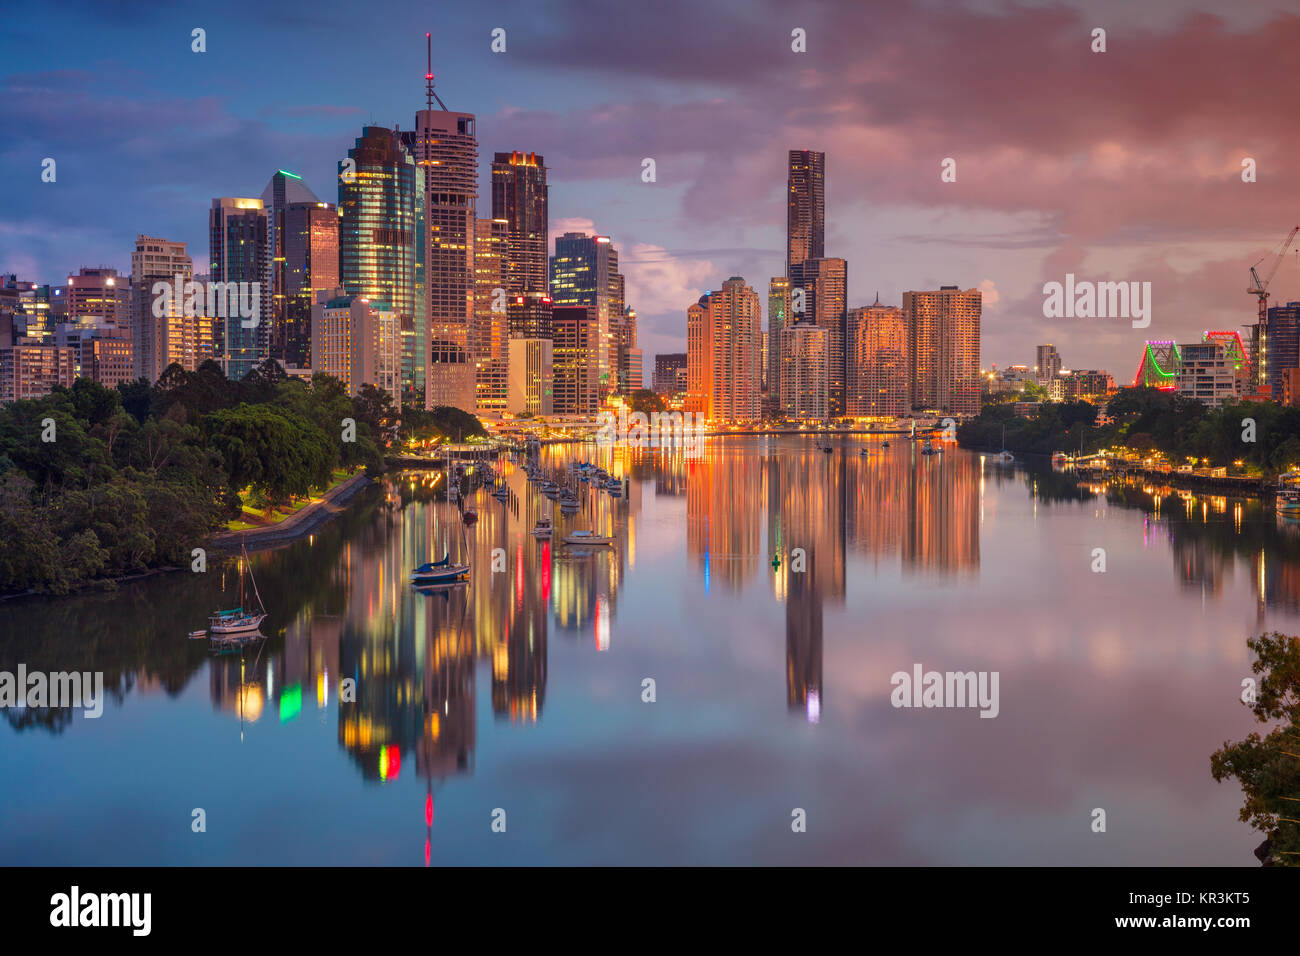 Brisbane. Cityscape image of Brisbane skyline, Australia during sunrise. Stock Photo